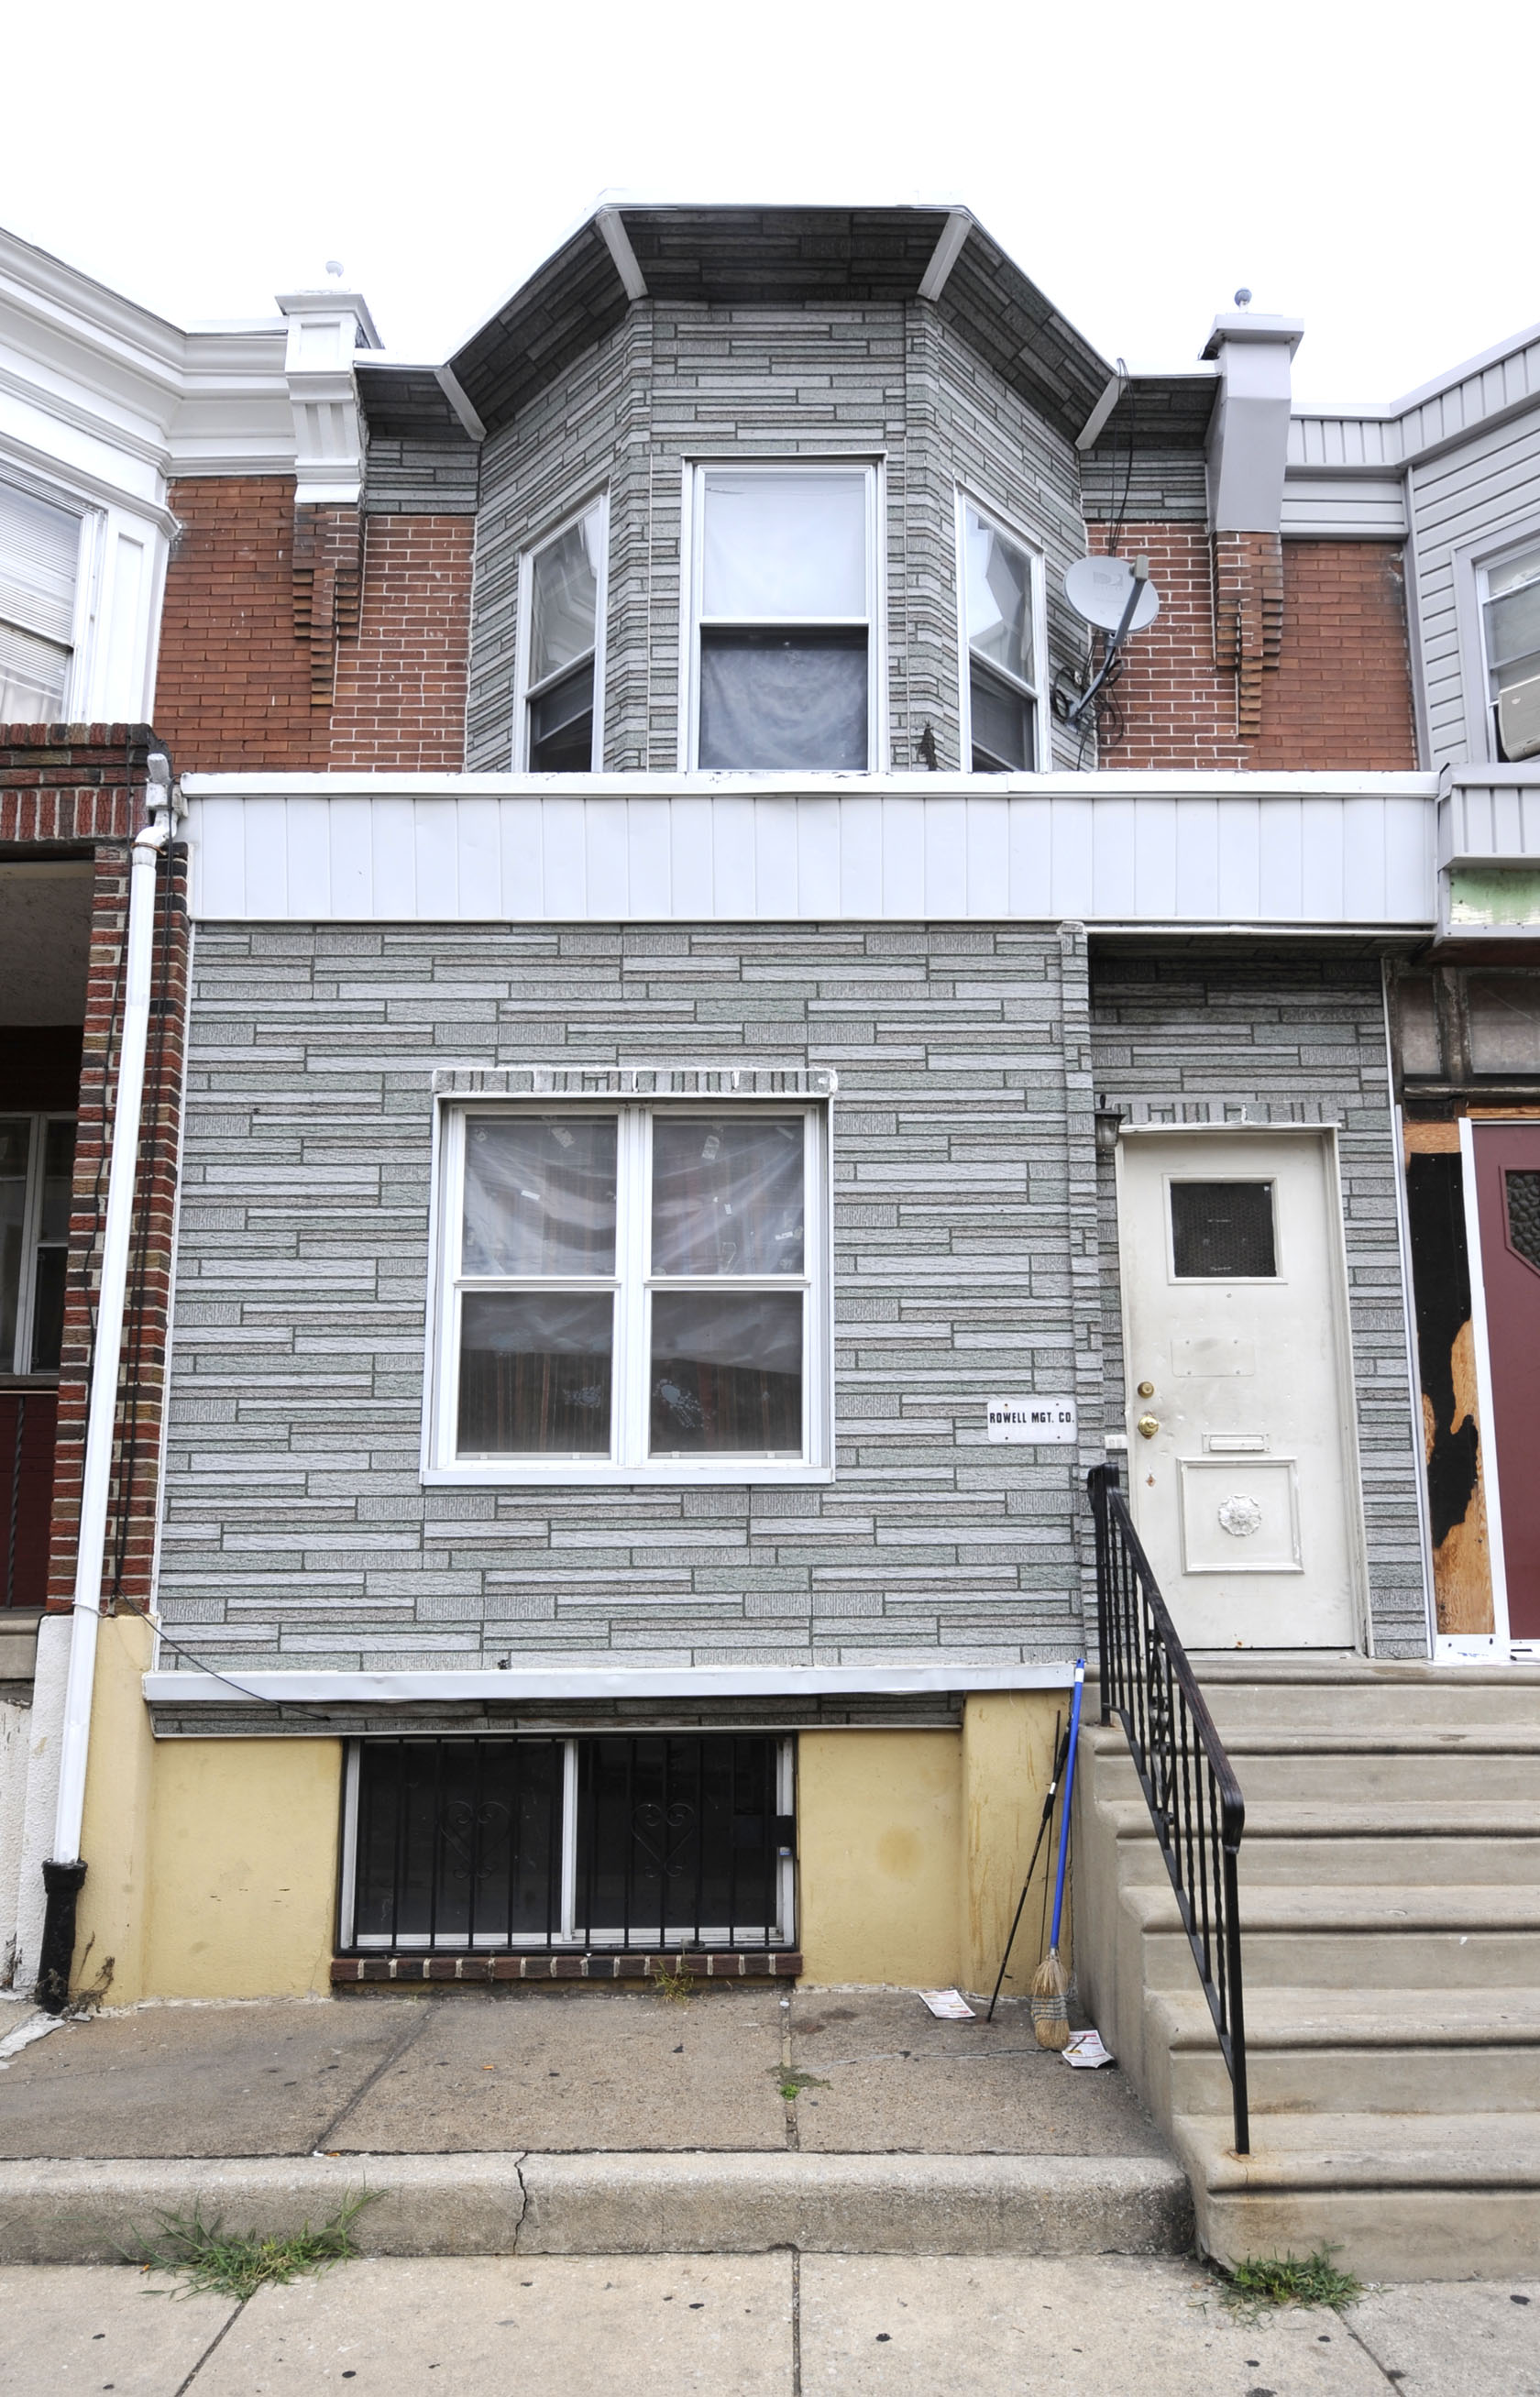 2527 S. Felton St. is owned by William Rowell, a landlord with many delinquent properties. (Clem Murray / Inquirer)